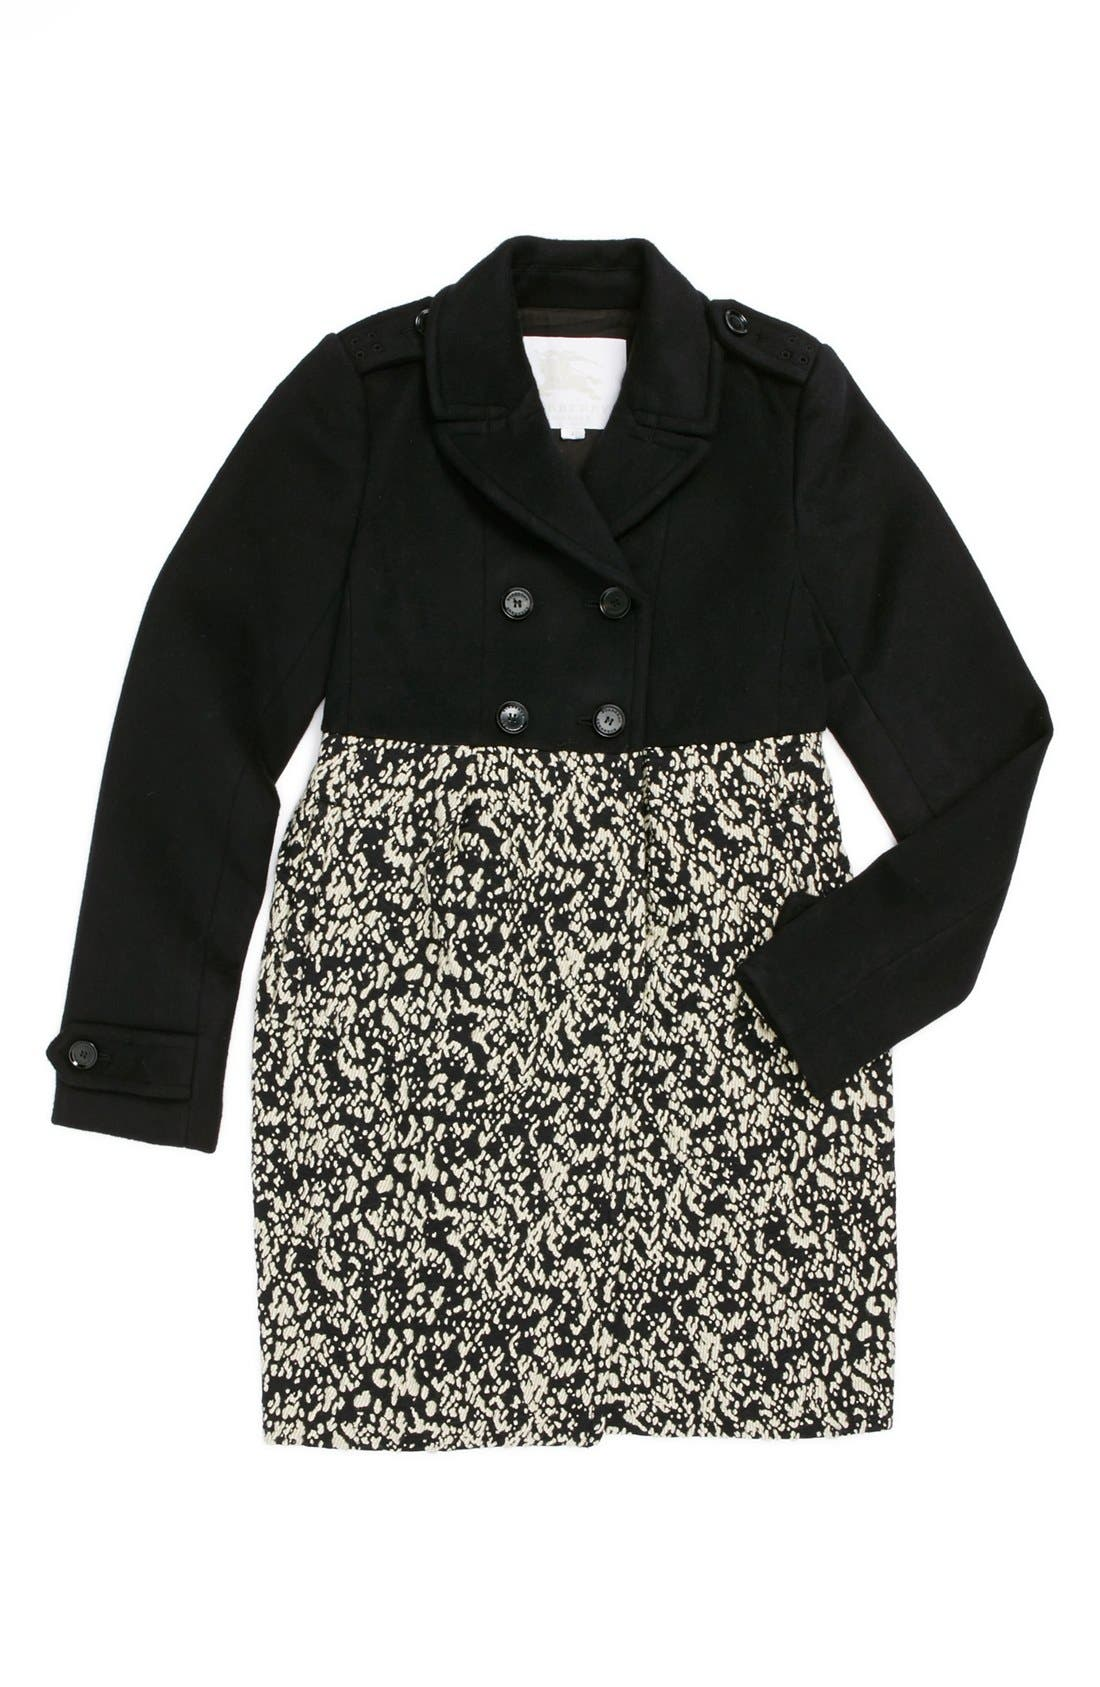 Alternate Image 1 Selected - Burberry Double Breasted Coat (Little Girls & Big Girls)